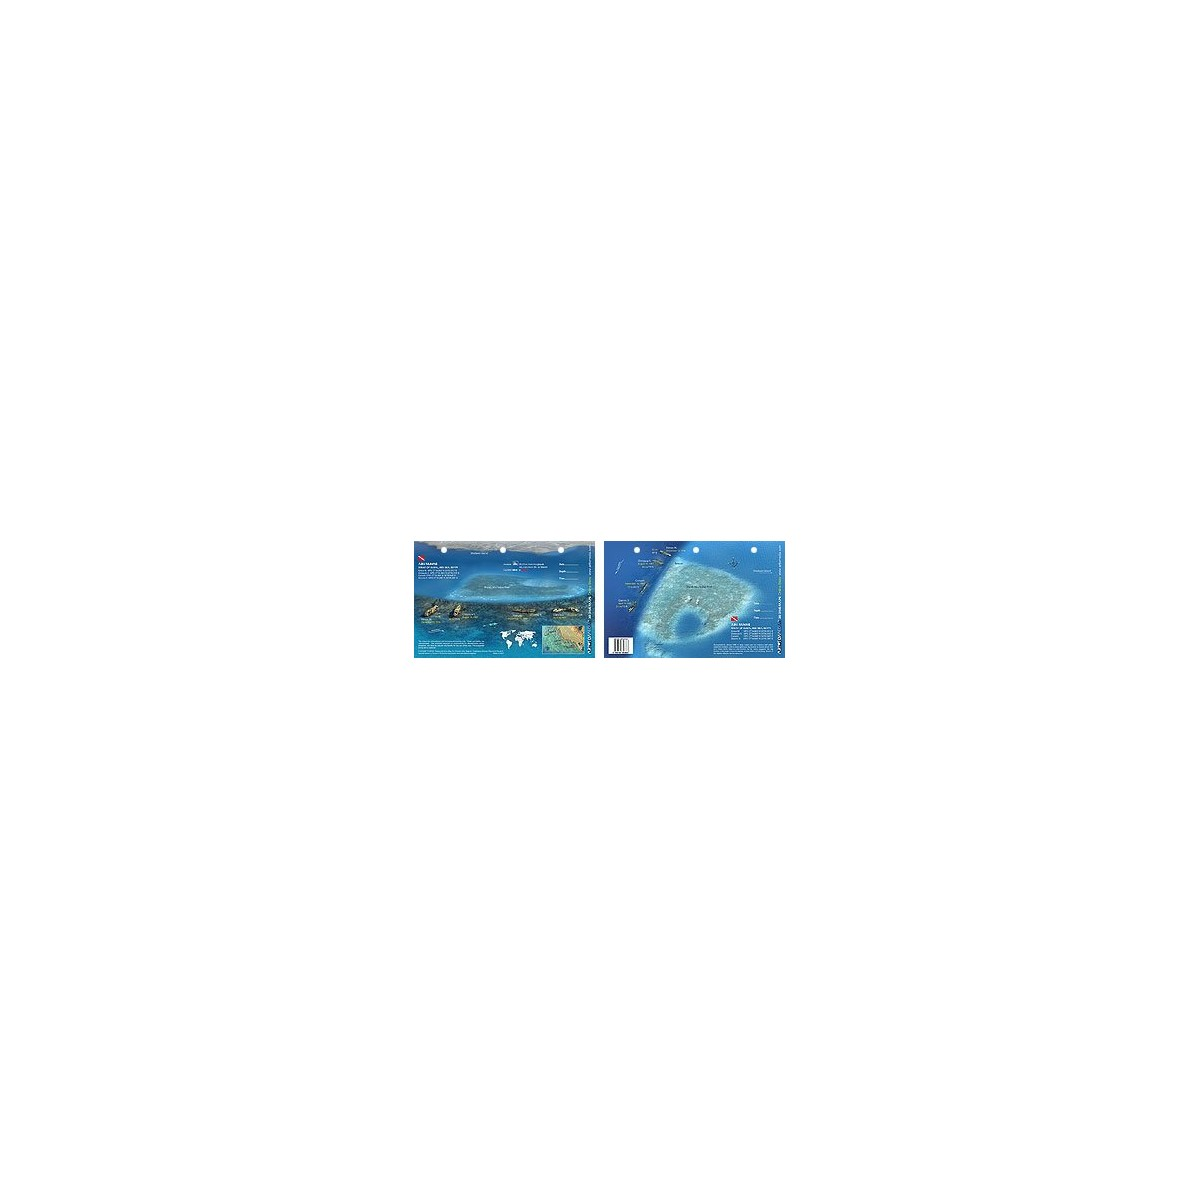 Sa`ab Abu Nuhas in the Red Sea, Egypt (8.5 x 5.5 Inches) (21.6 x 15cm) - New Art to Media Underwater Waterproof 3D Dive Site Map